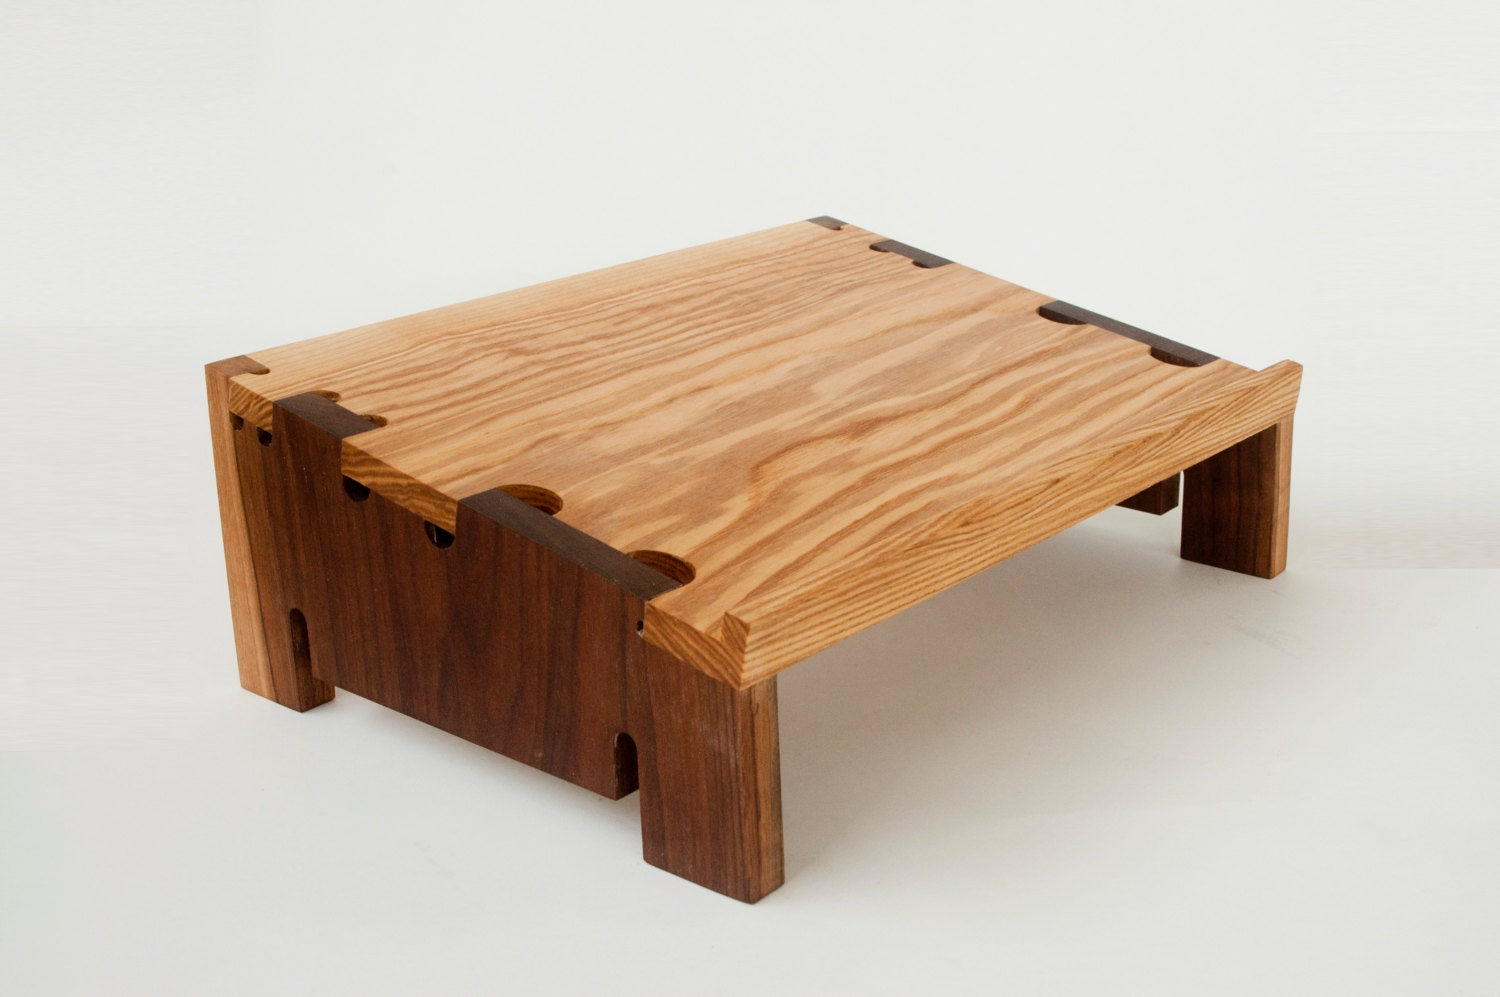 Wood laptop stand in ash and walnut digital joinery design